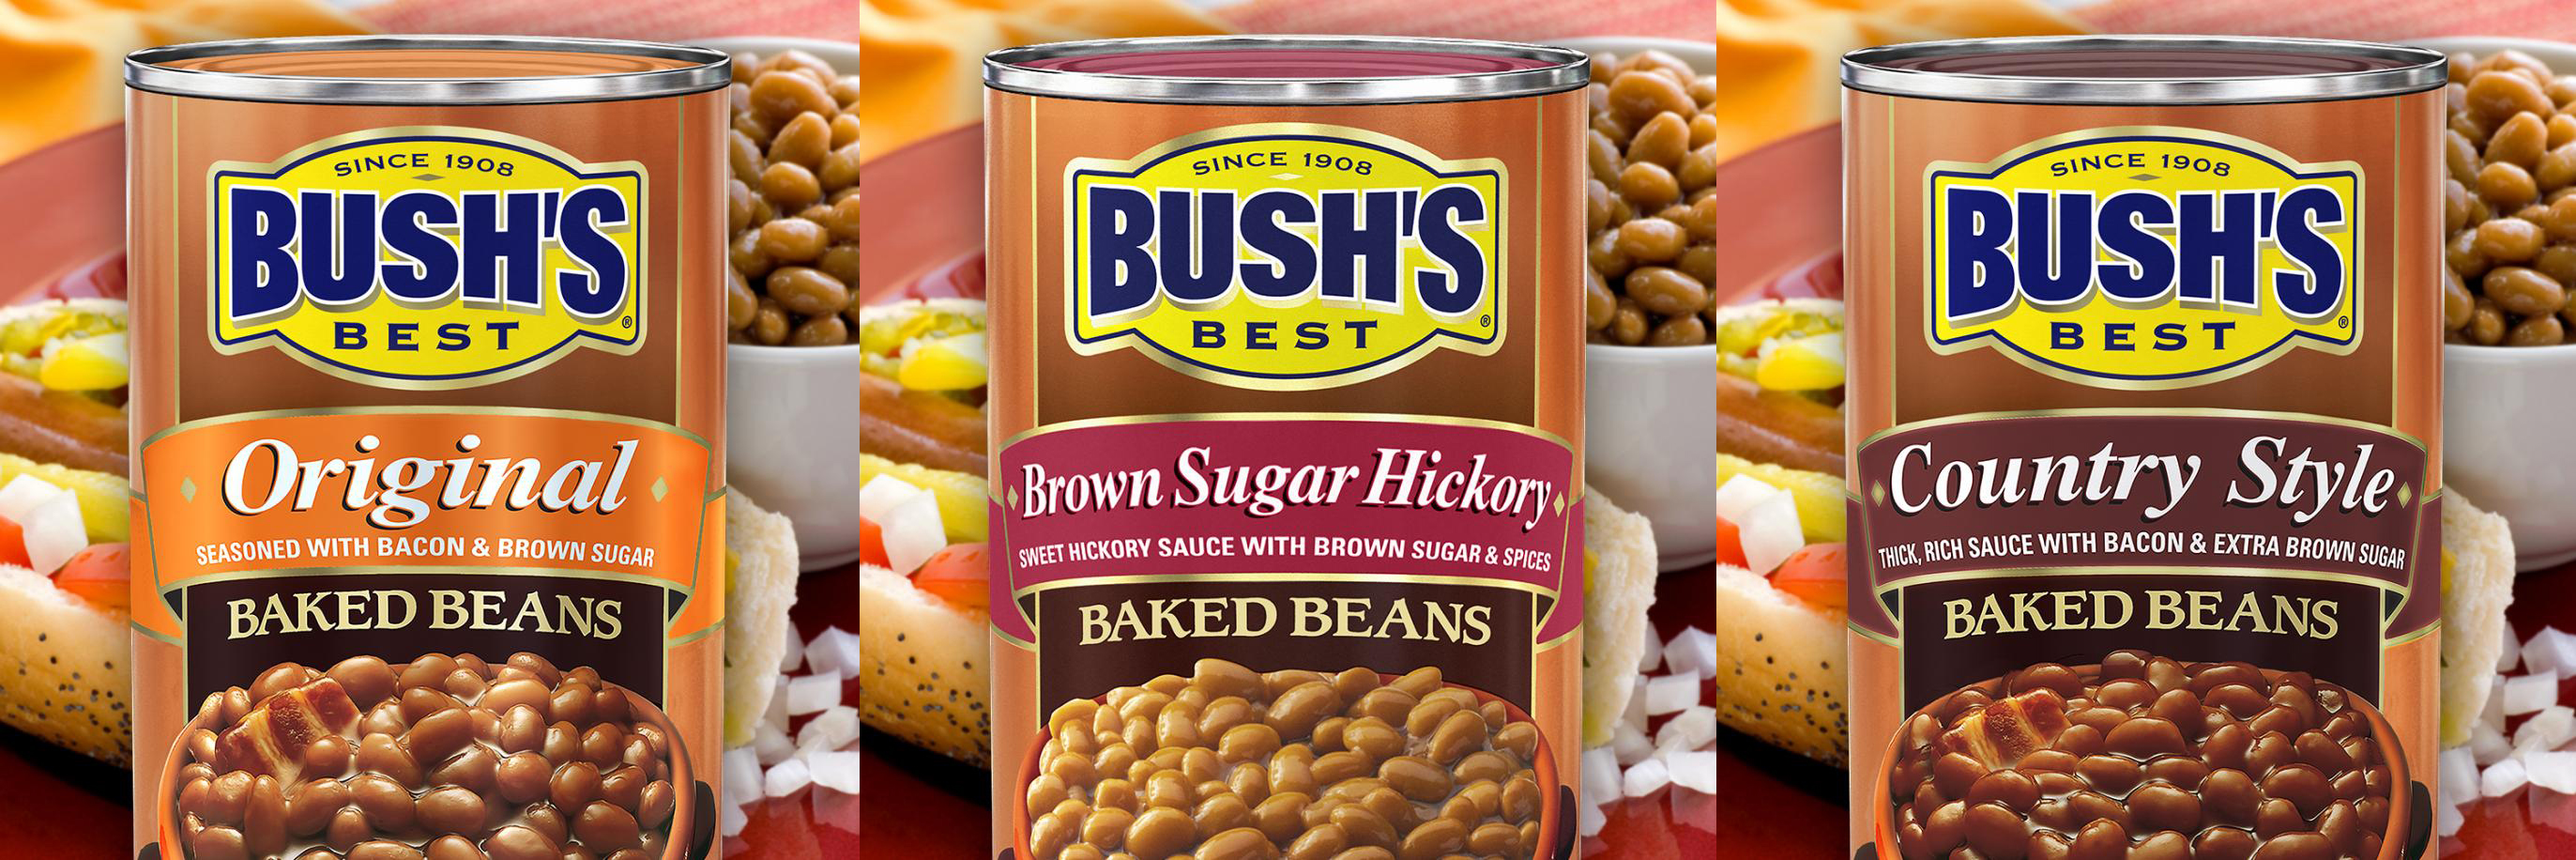 Bush's Baked Beans Recalled Due To Defective Cans